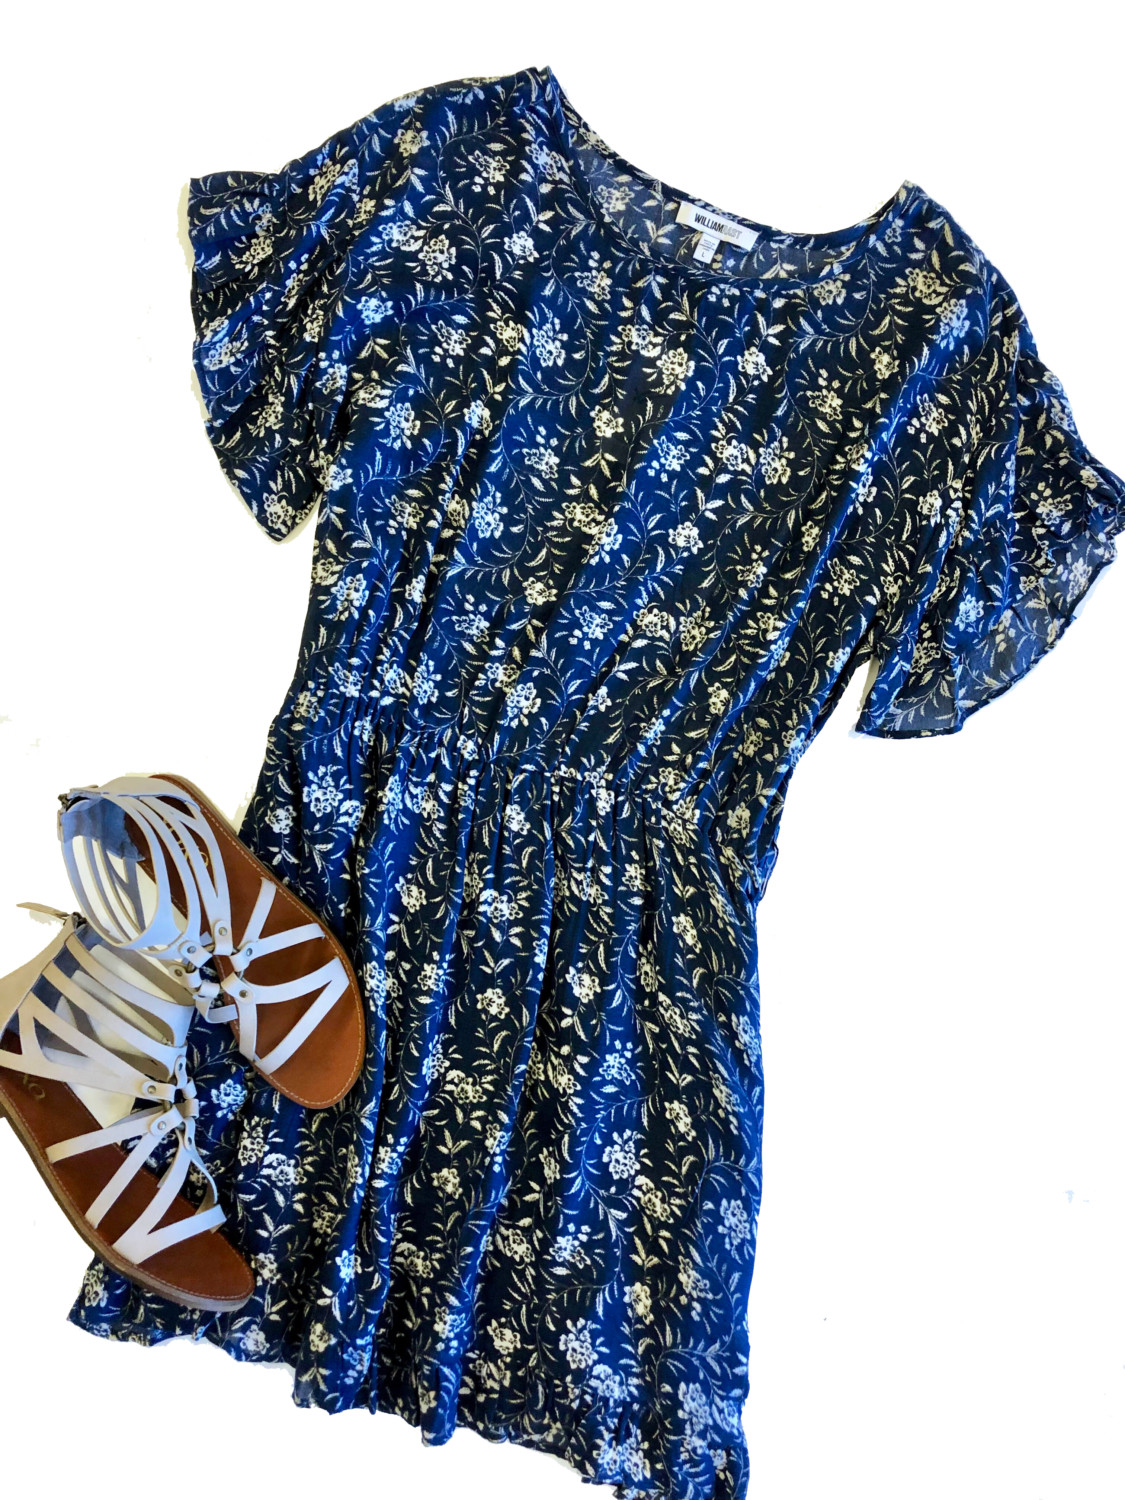 William Rast Dress – Original Retail: $90, CWS: $25